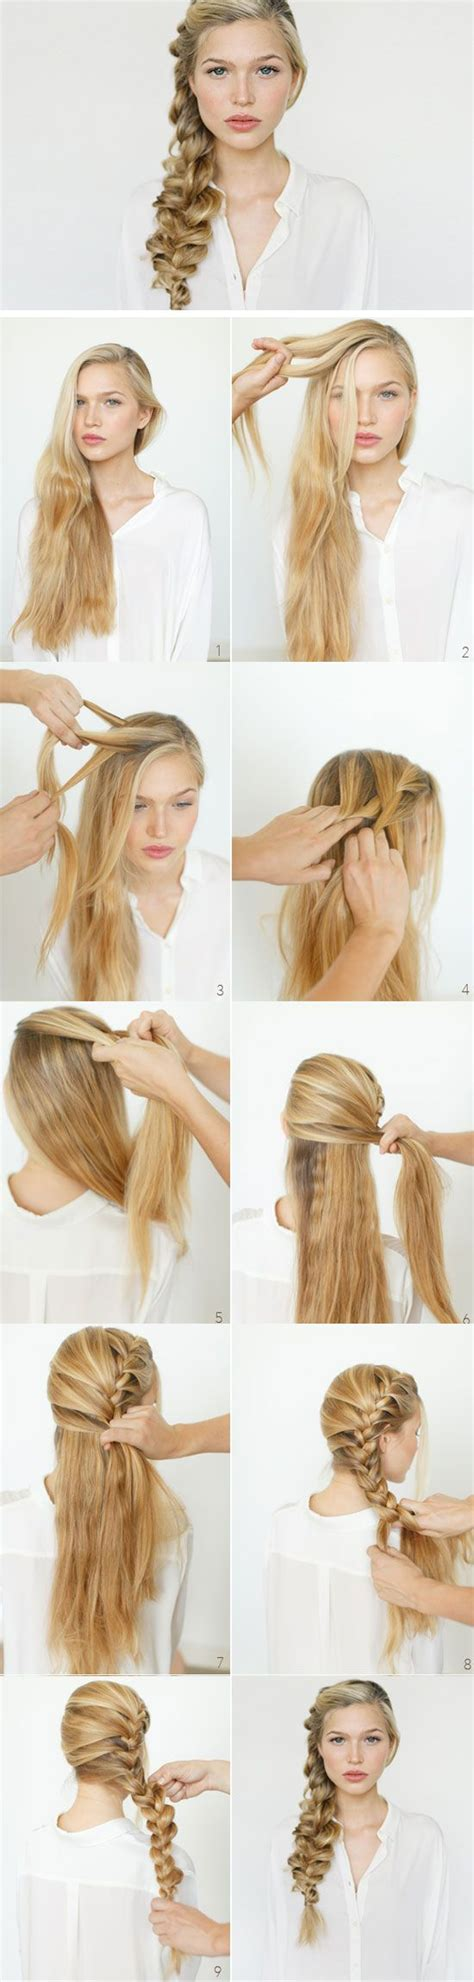 easy style for hair easy hairstyles for medium hair to do yourself bebelush 5720